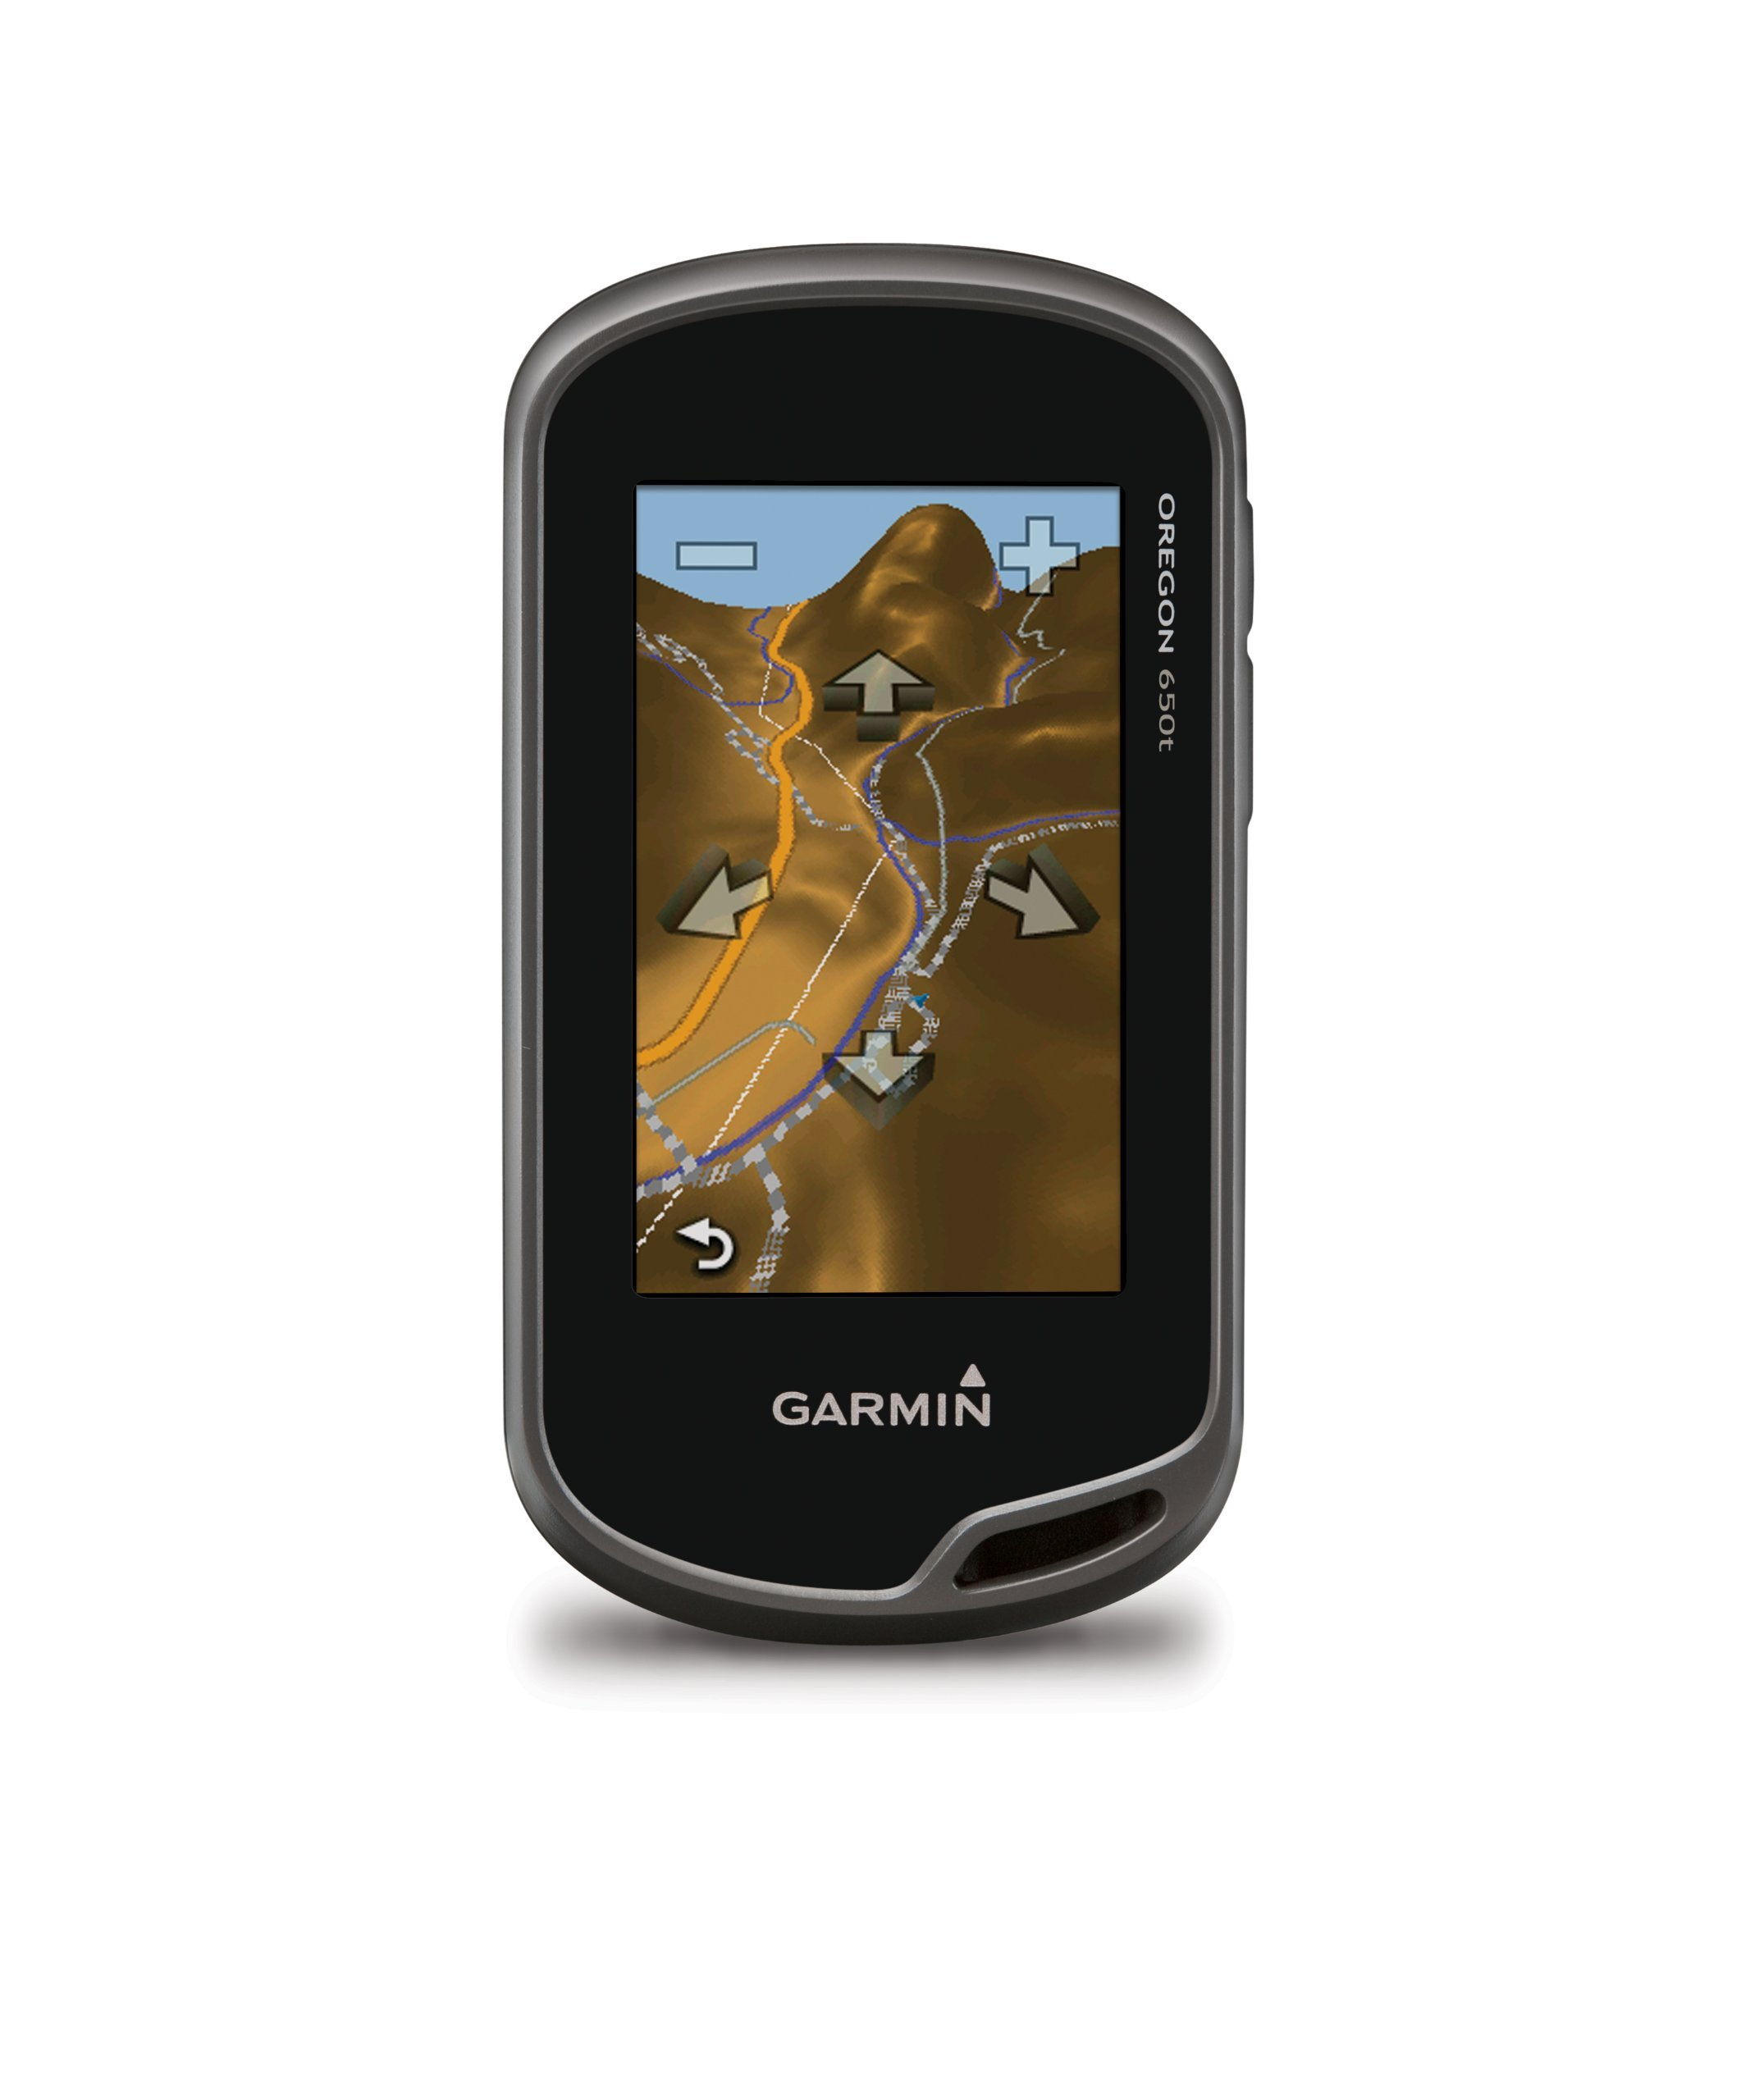 Garmin Oregon 650t 3-Inch Handheld GPS with 8MP Digital Camera (US Topographic Maps) (Certified Refurbished) by Garmin